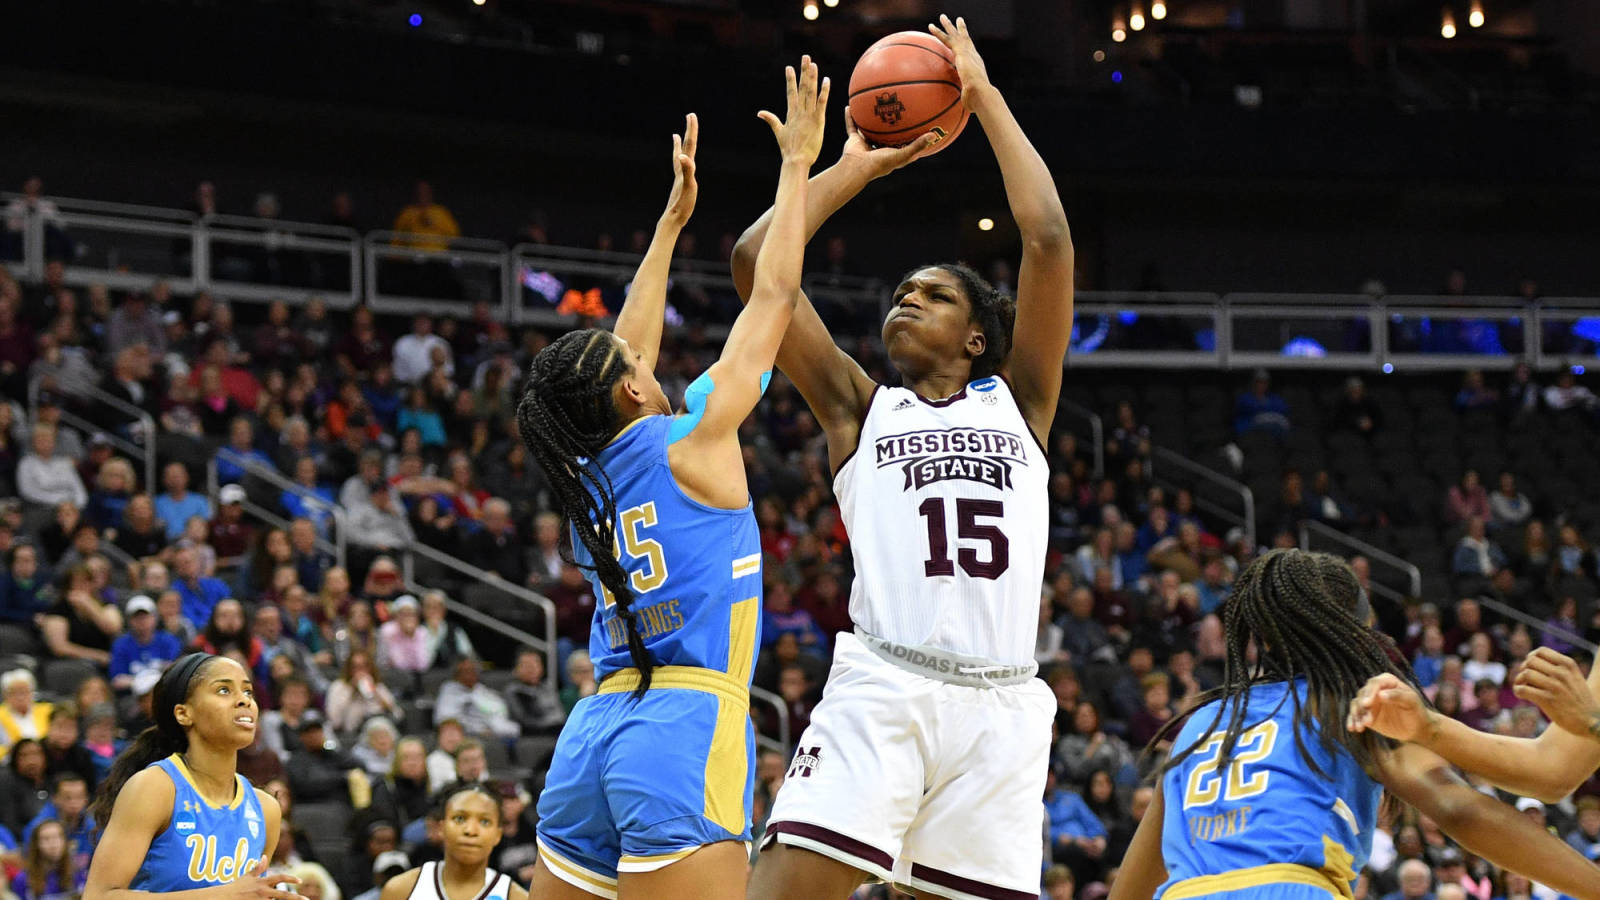 Mississippi State heads to NCAA Women's Championship after OT victory over Louisville